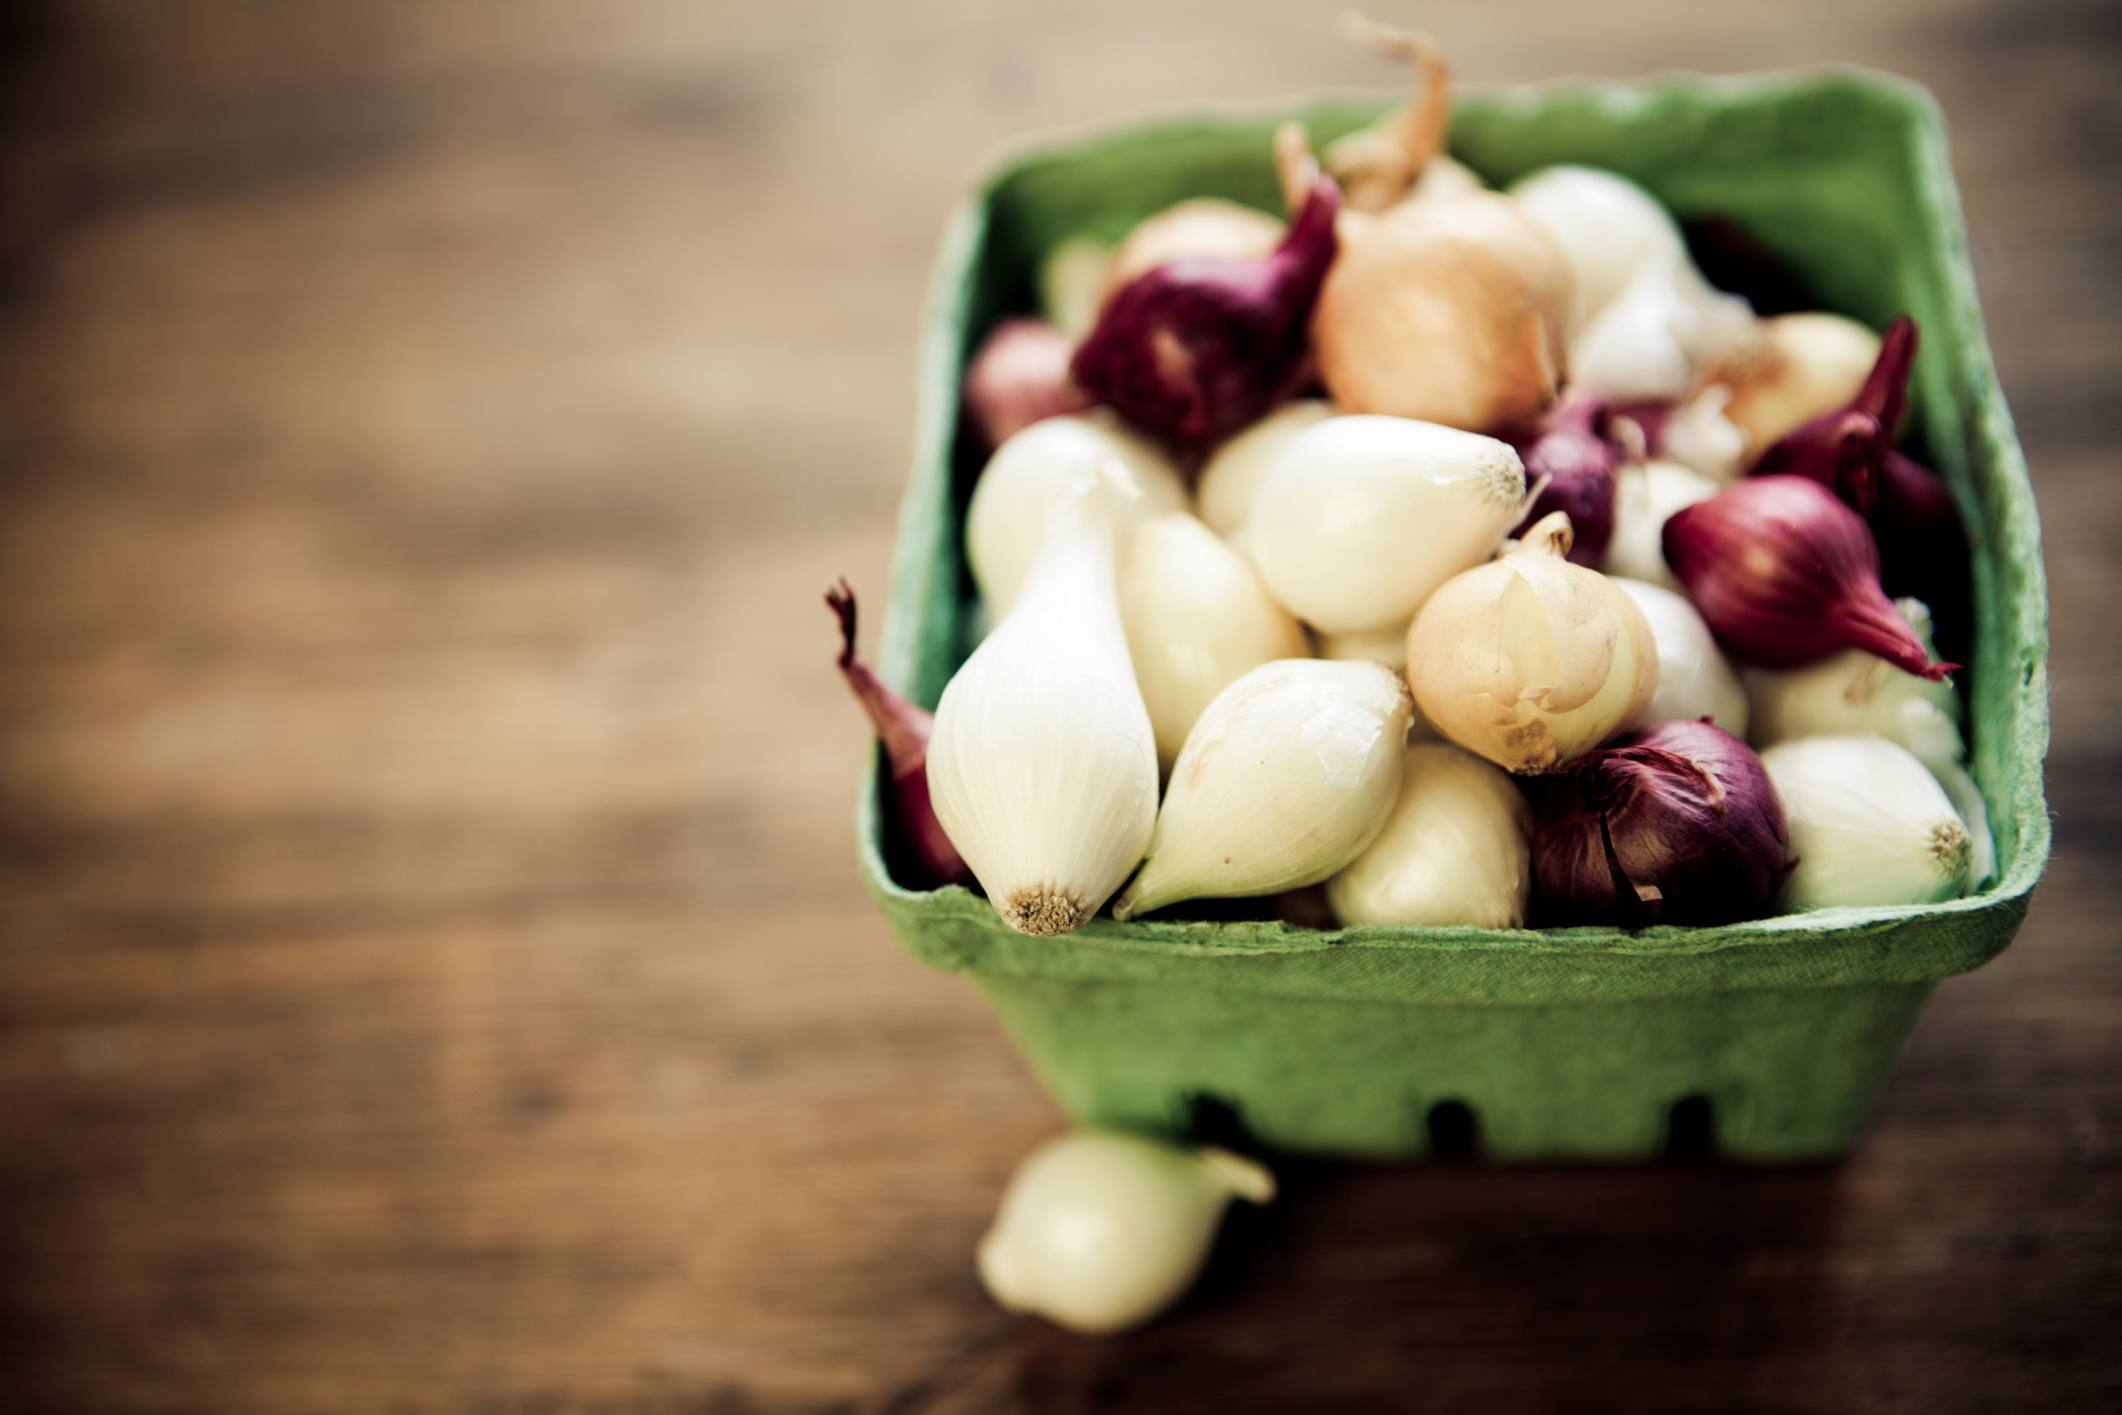 small onions, pearl onions